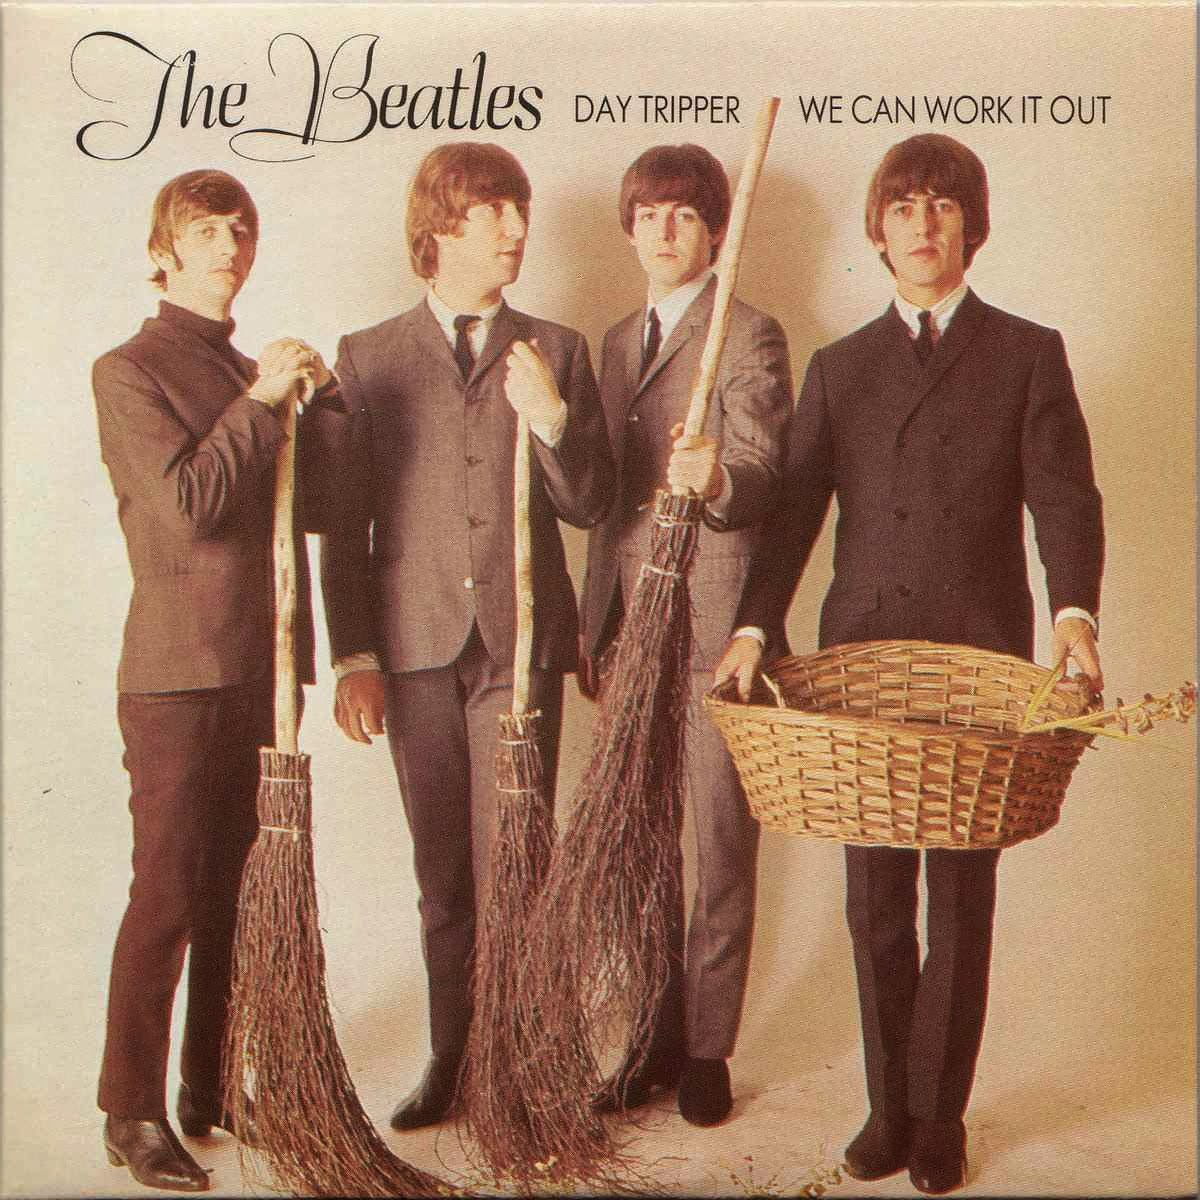 Tan Sólo Música : The Beatles (1965) - We Can Work It Out